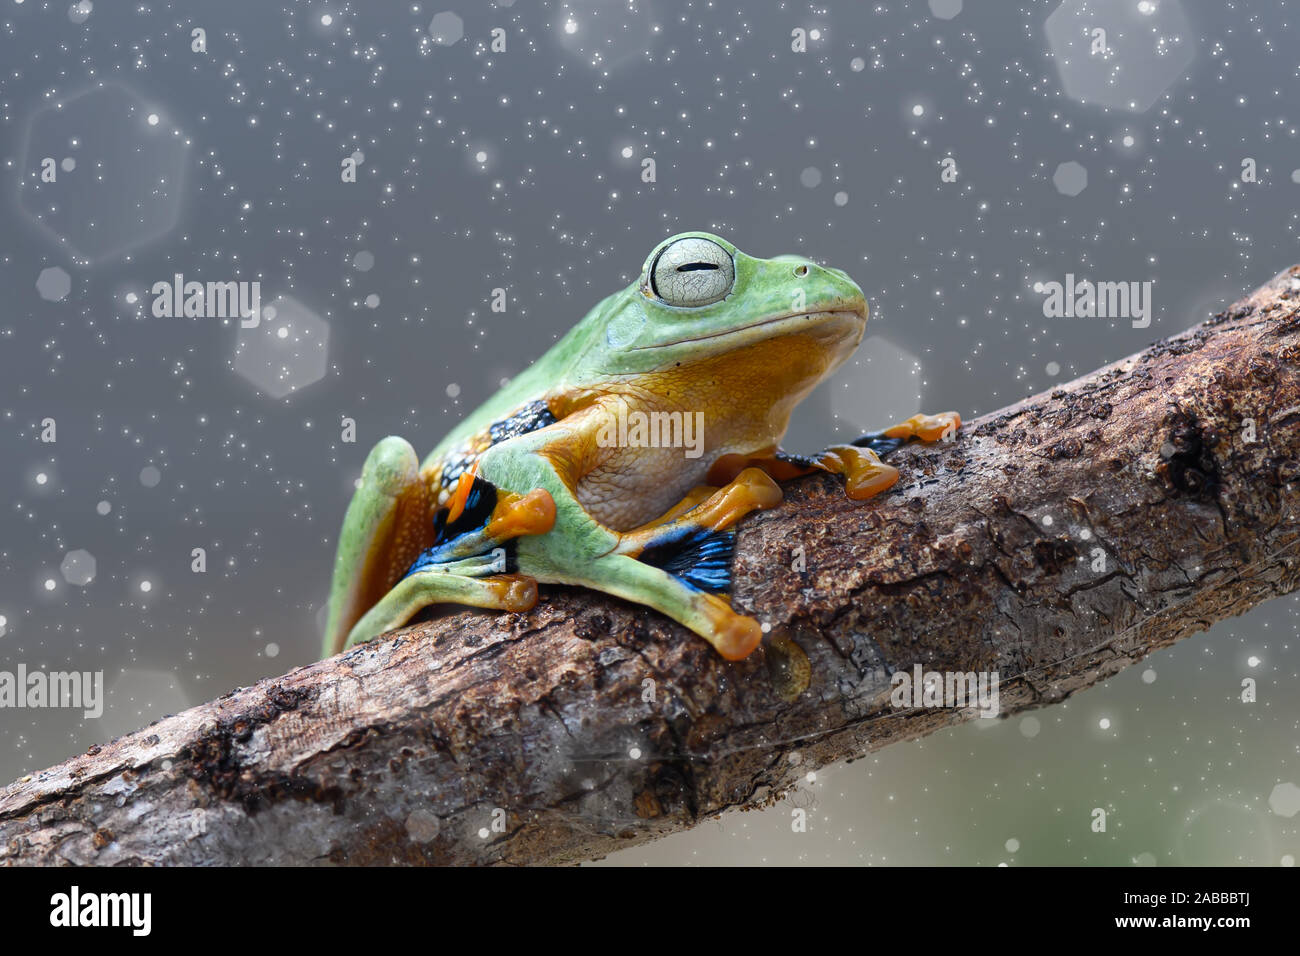 Wallace Flying Frog on a branch, Kalimantan, Borneo, Indonesia Stock Photo